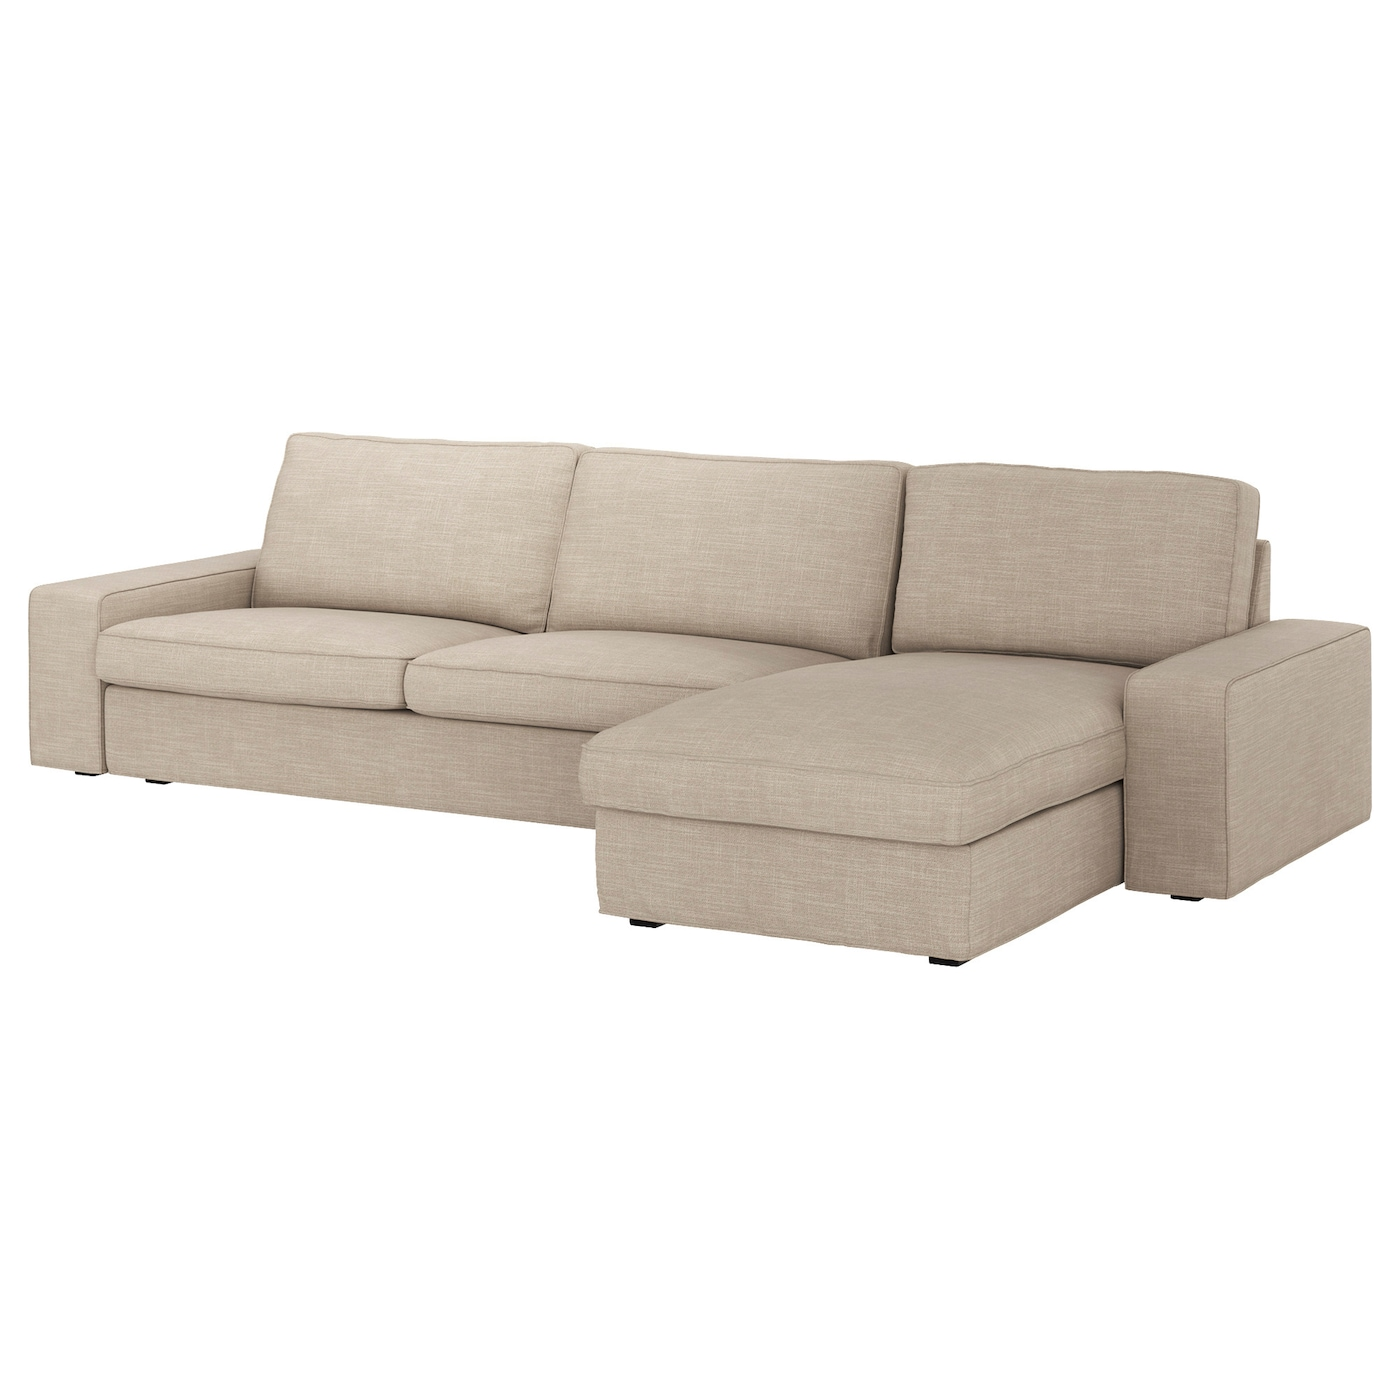 Kivik Three Seat Sofa And Chaise Longue Hillared Beige Ikea